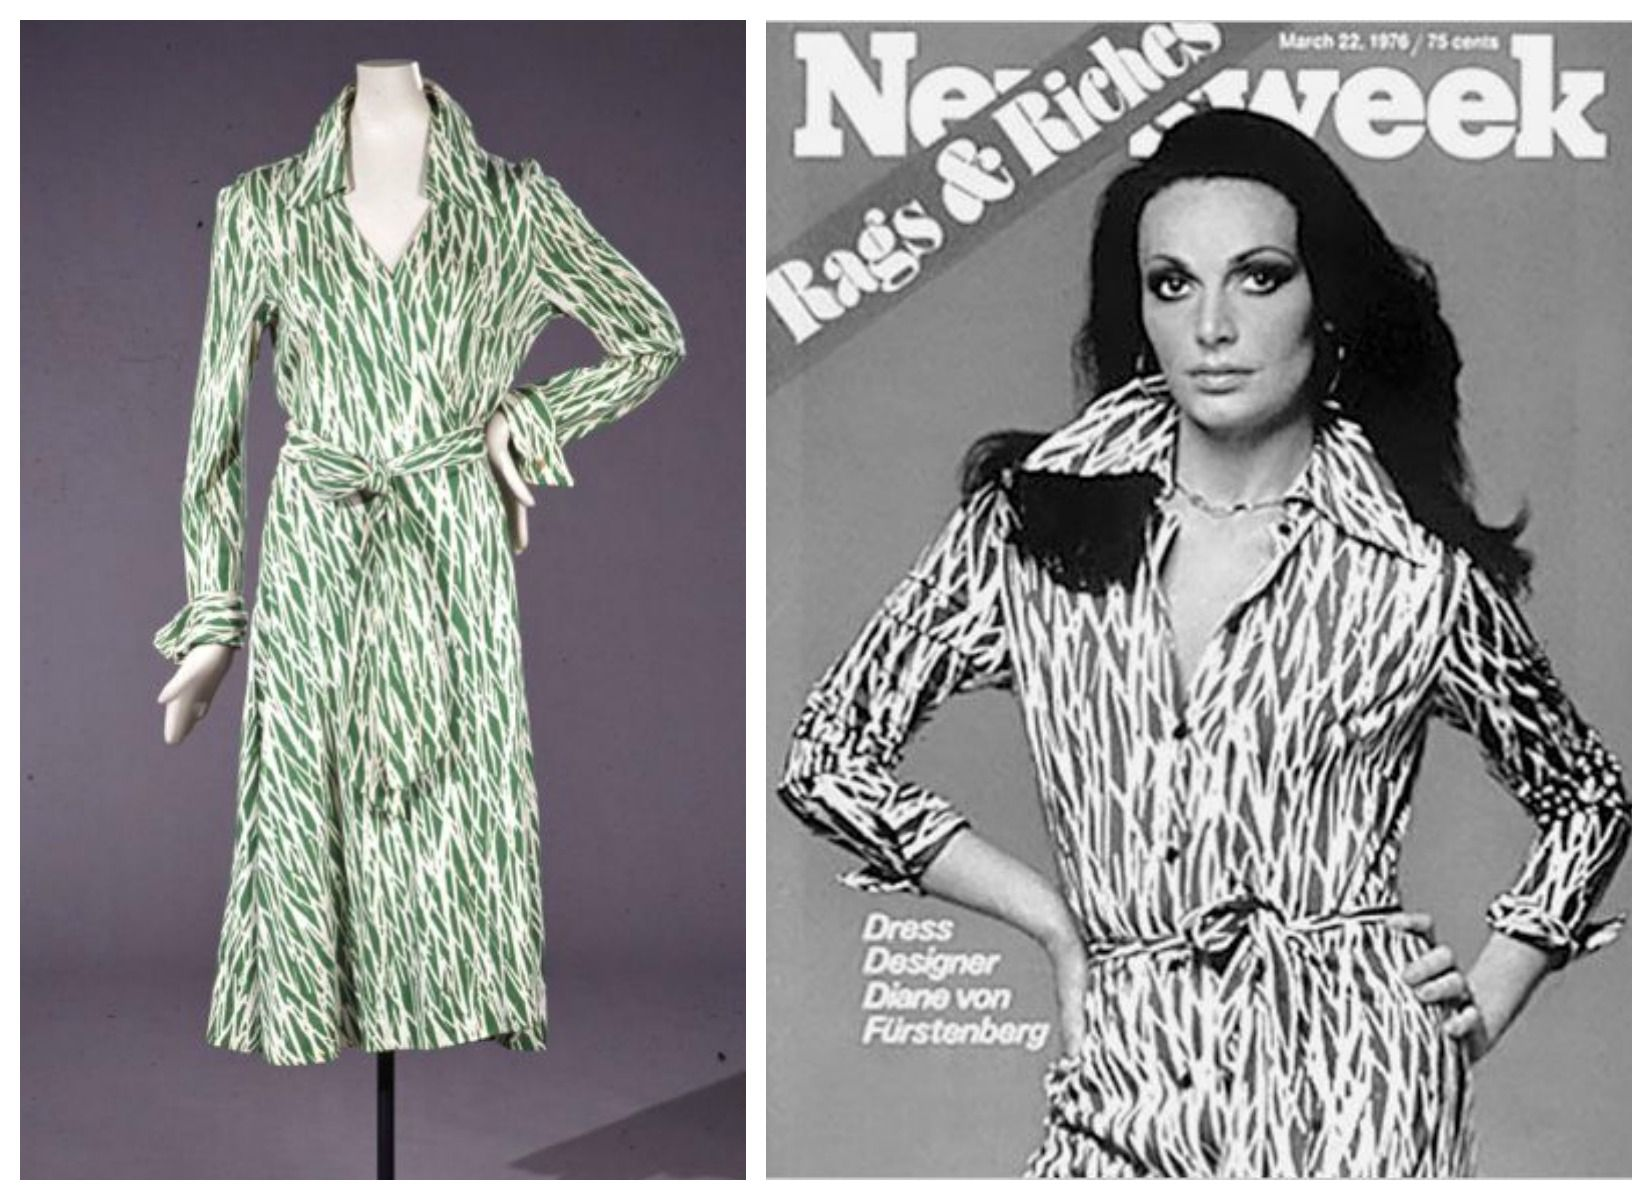 Diane Von Furstenberg The Wrap Dress Eared On Cover Of Newsweek In 1976 Wearing Her Signature Photo